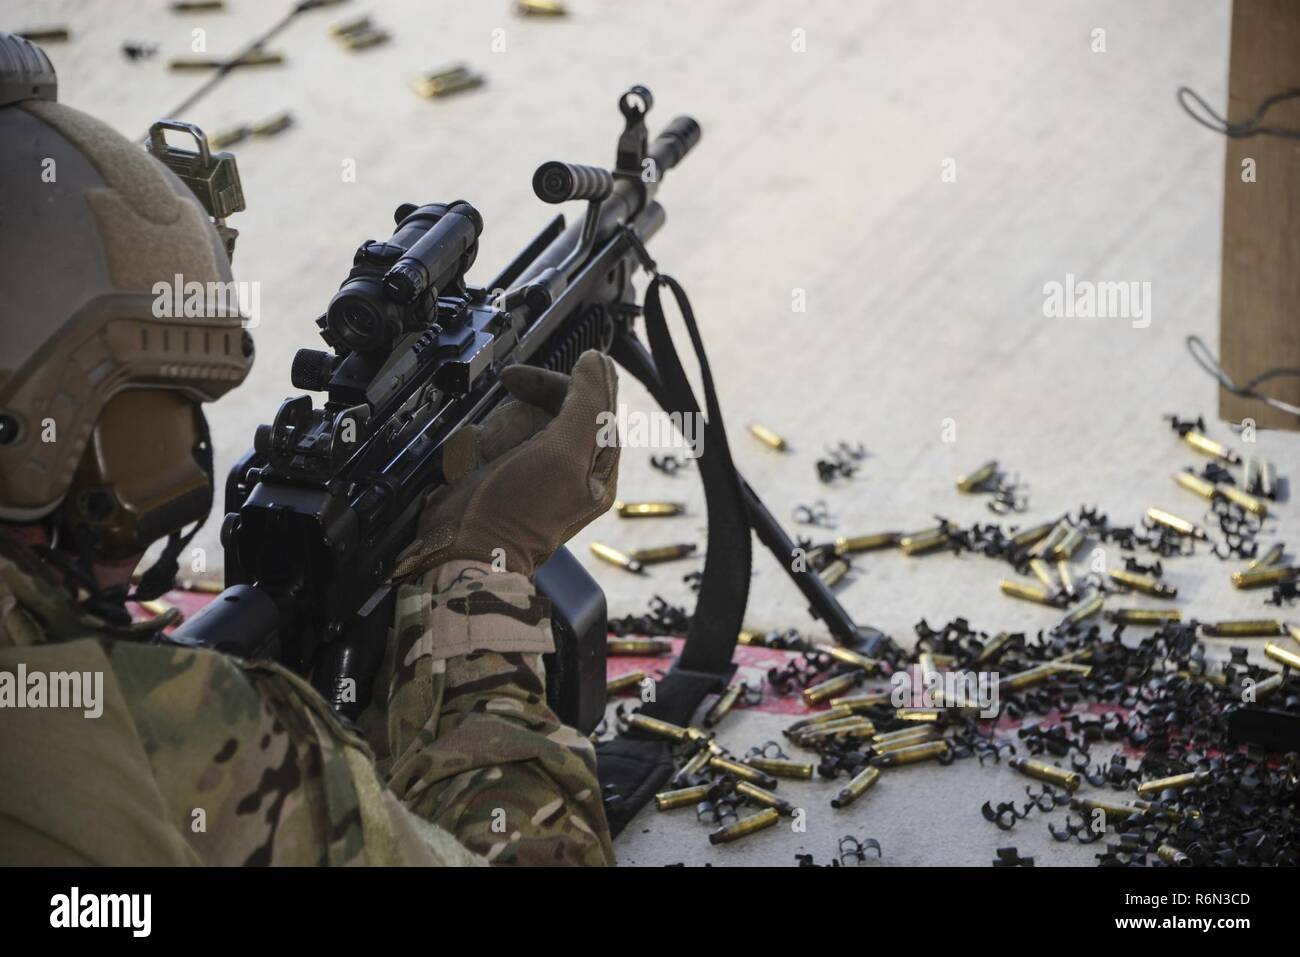 A U.S. Air Force pararescueman fires an M249 automatic rifle during the Guardian Angel Mission Qualification Training course at Davis-Monthan Air Force Base, Ariz., May 18, 2017. The MQT is a 90 day course that takes pararescuemen who have completed Air Education and Training Command schooling and helps them achieve their 5-level qualification. - Stock Image